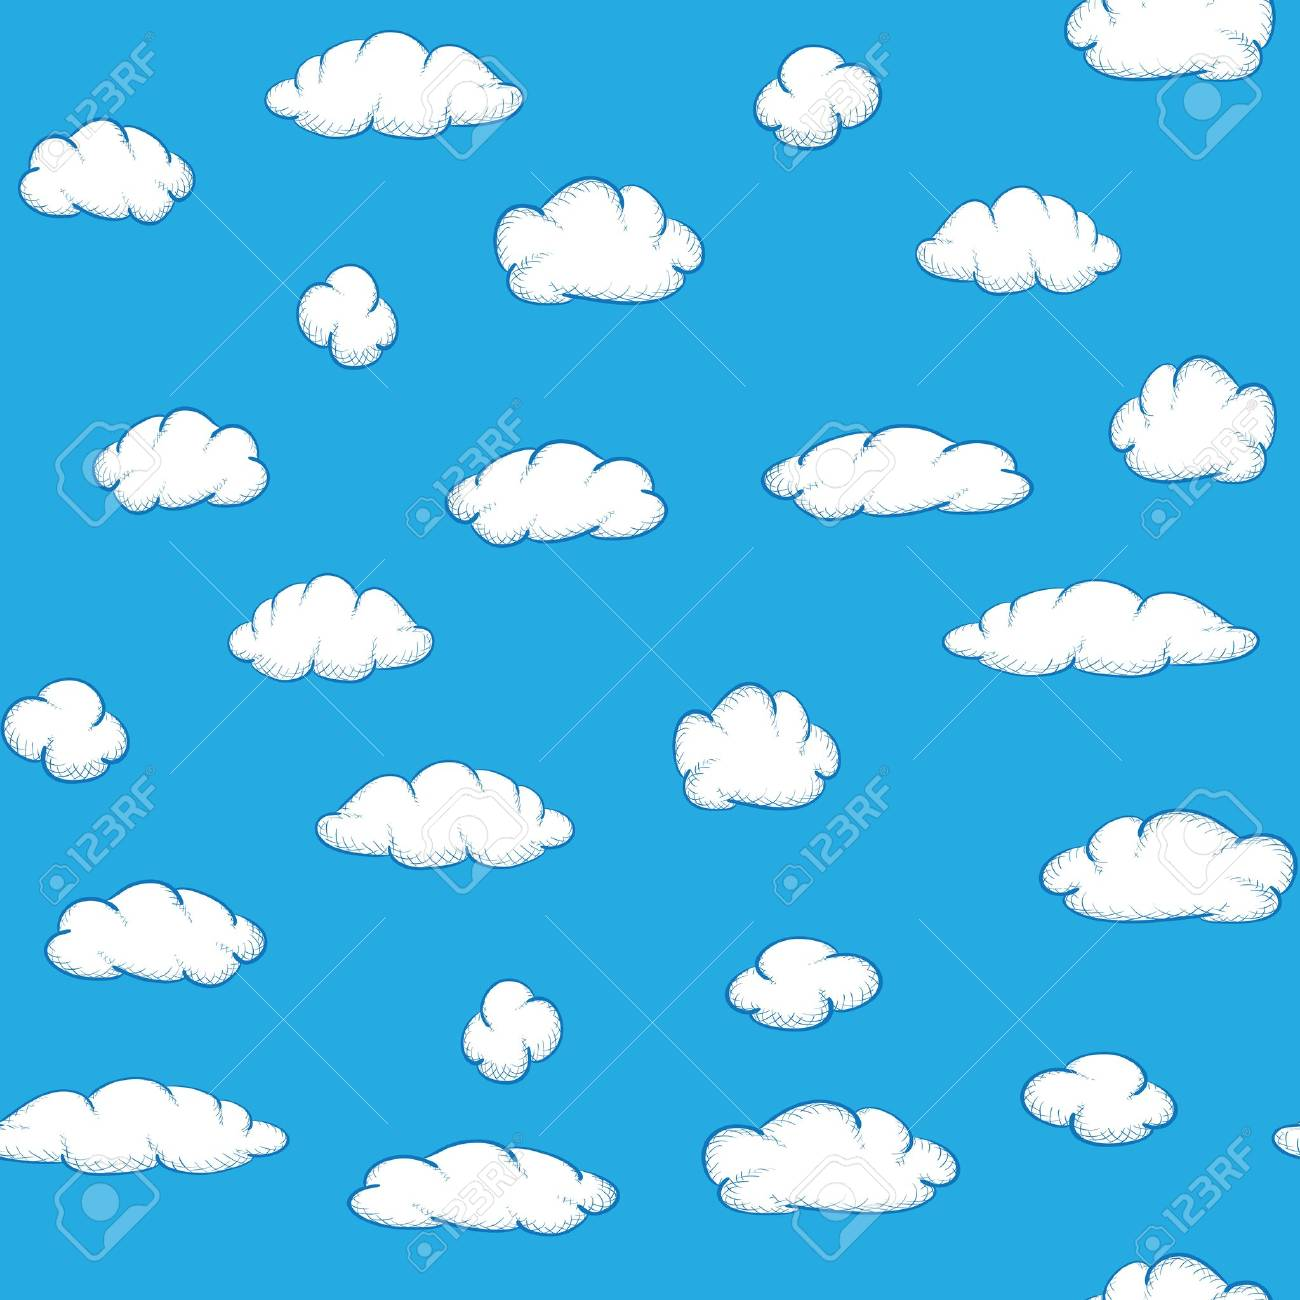 Blue Sky With Clouds Clipart.